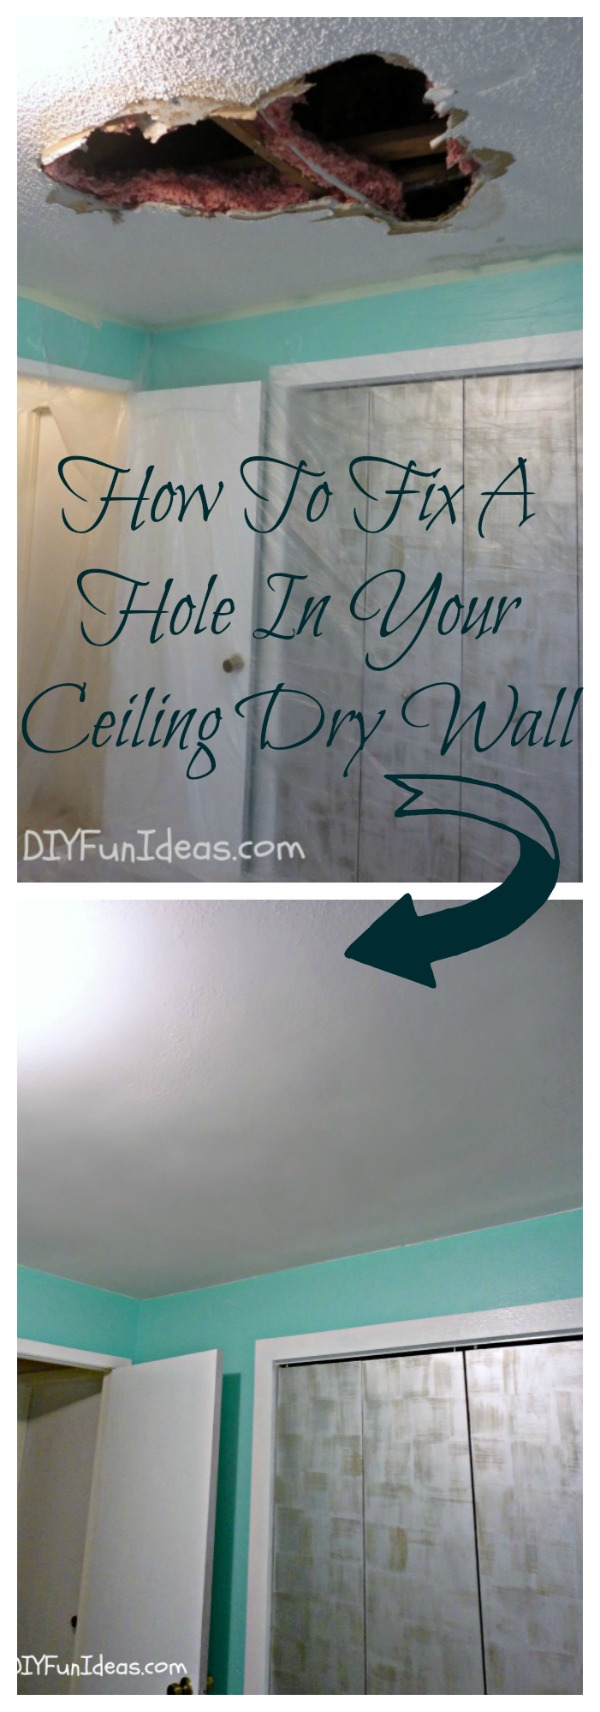 How-To-Fix-A-Hole-In-Your-Ceiling-Dry-Wall Paint Mobile Home Ceilings on mobile home chandelier, mobile home tn, mobile home in nc, mobile home stone, mobile home garden, mobile home room, mobile home panel, mobile home update ideas, mobile home floor, mobile home log, mobile home drywall, mobile home lot, mobile home remodeling ideas, mobile home insulation, mobile home basement, mobile home wiring, mobile home paneling, mobile home office, mobile home hvac, mobile home walls,